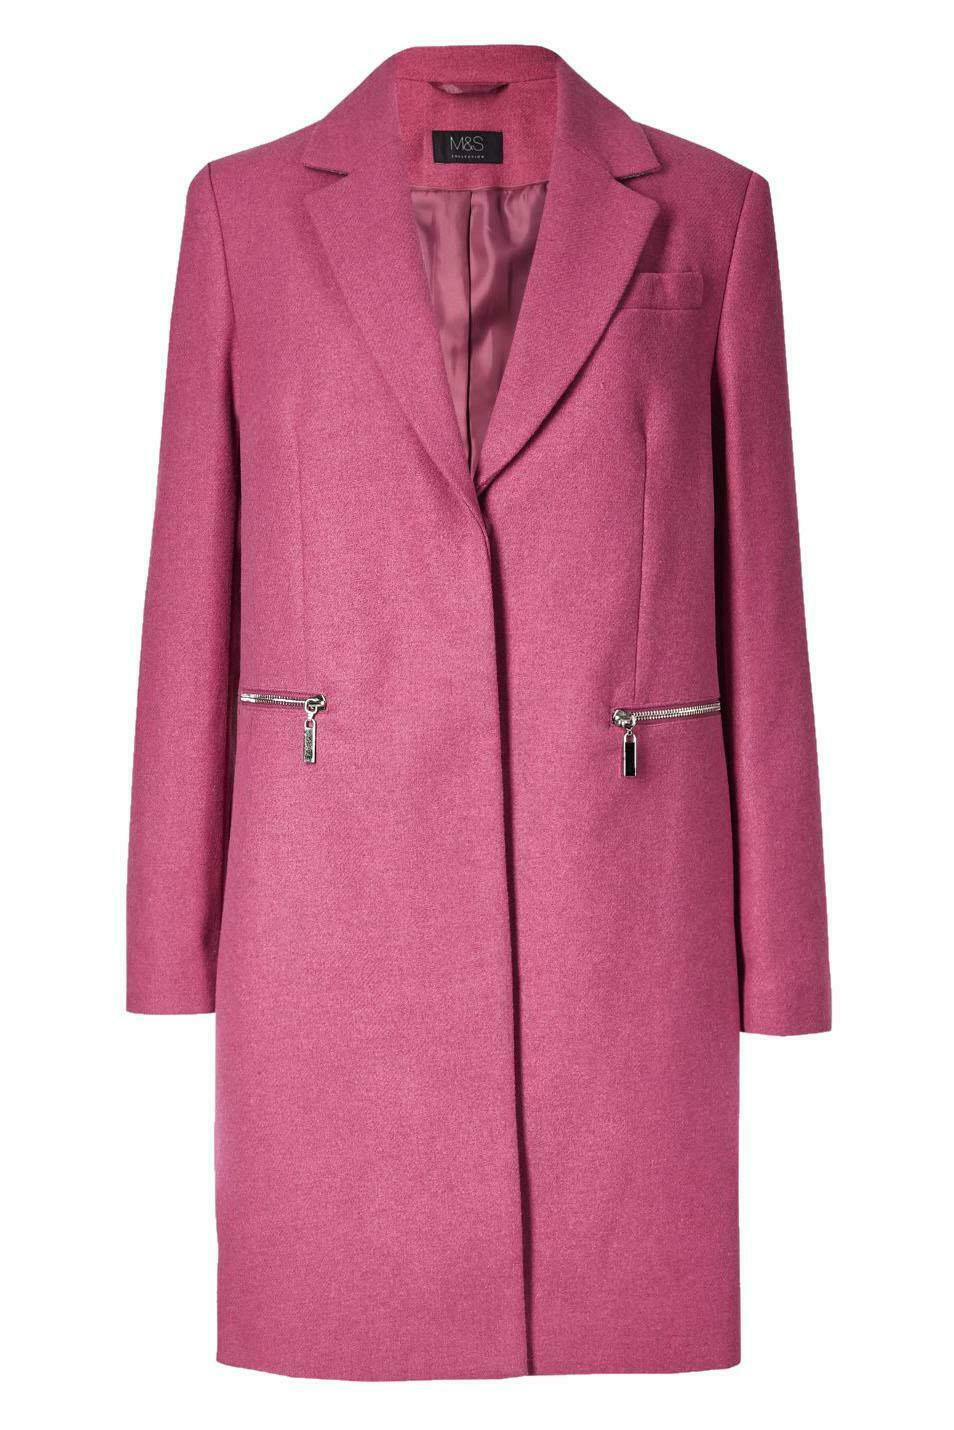 M-amp-S-Wool-Blend-Single-Breasted-Pink-Brown-Winter-Coat-Holly-Willoughby-Size-6-24 thumbnail 48